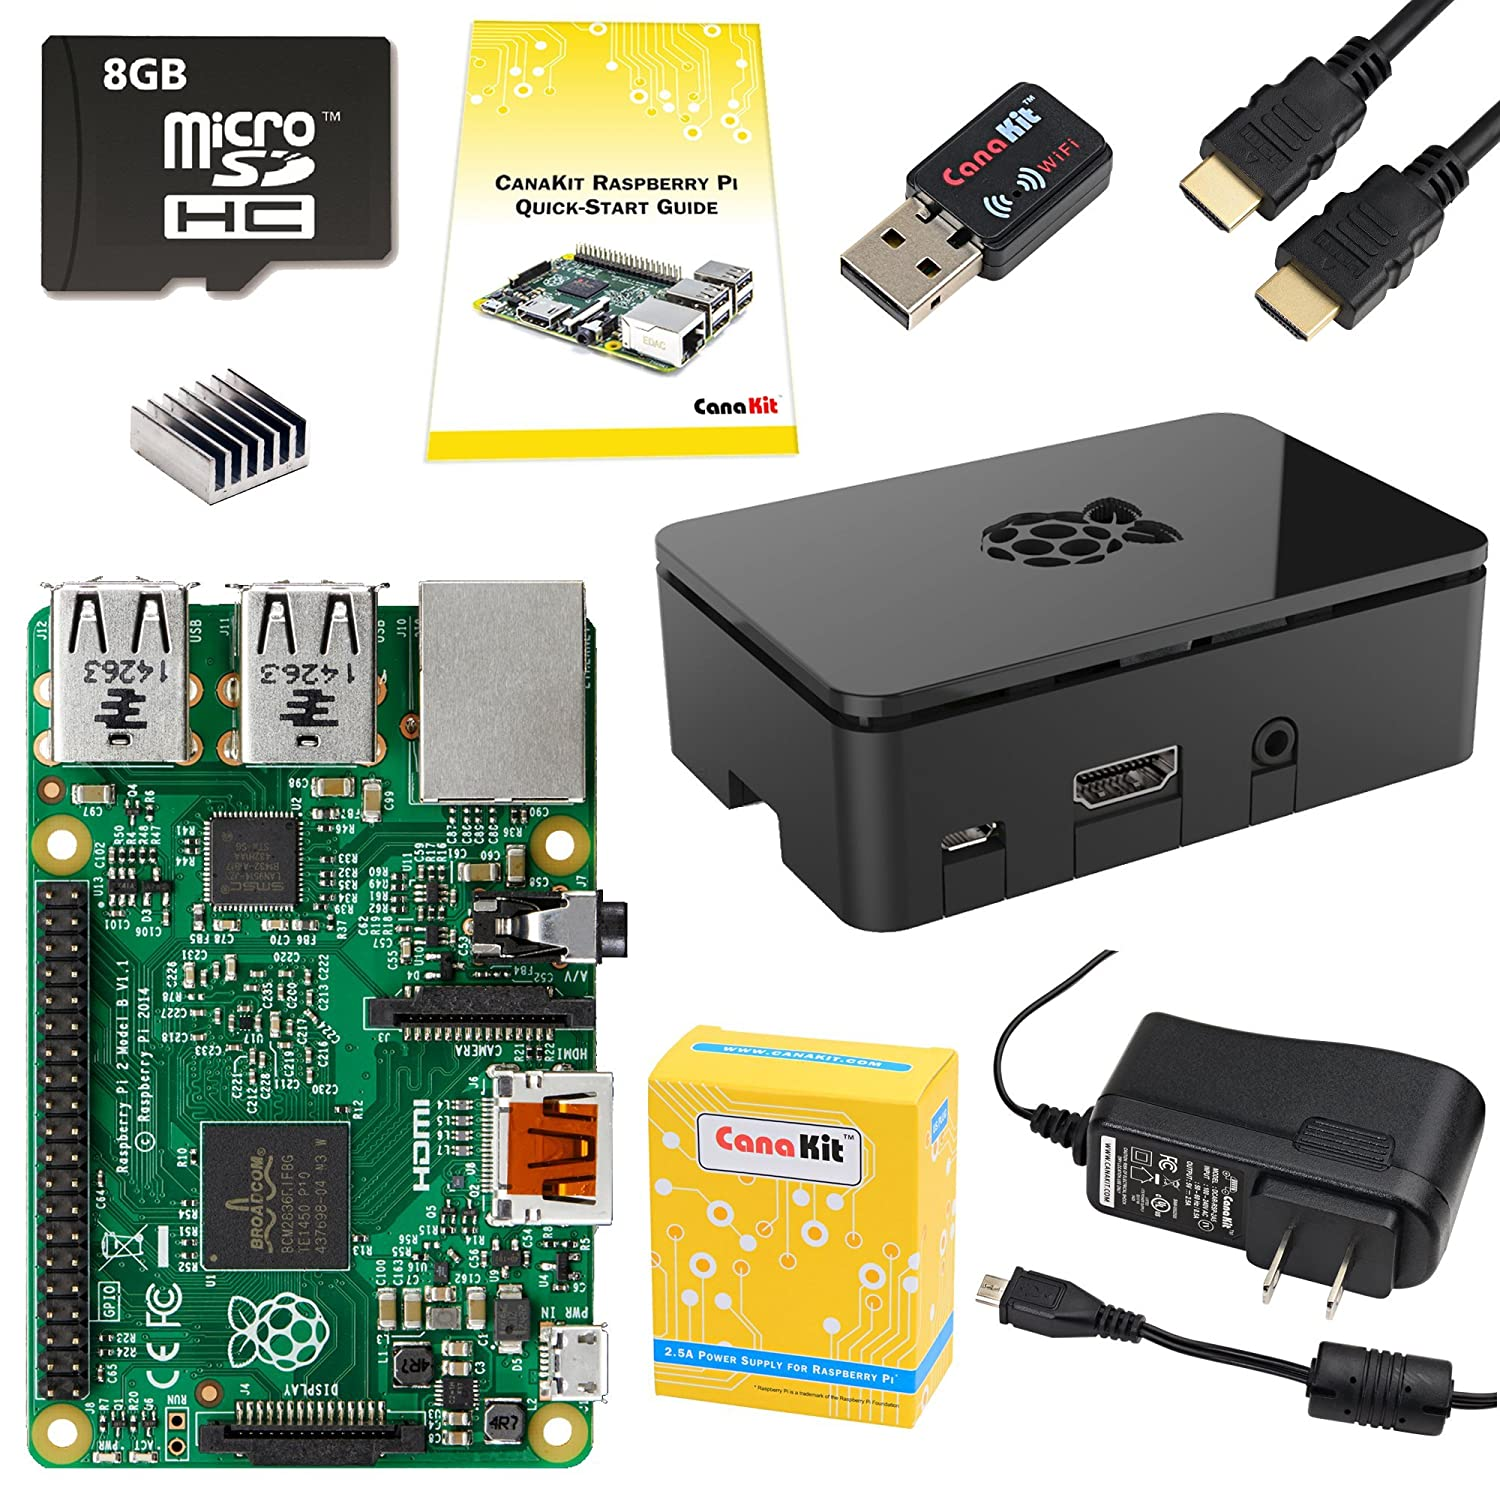 Canakit Raspberry Pi 2 Complete Starter Kit 9 Items Science Notebooking Electrical Circuit Boxes And Online Game Love Computers Accessories